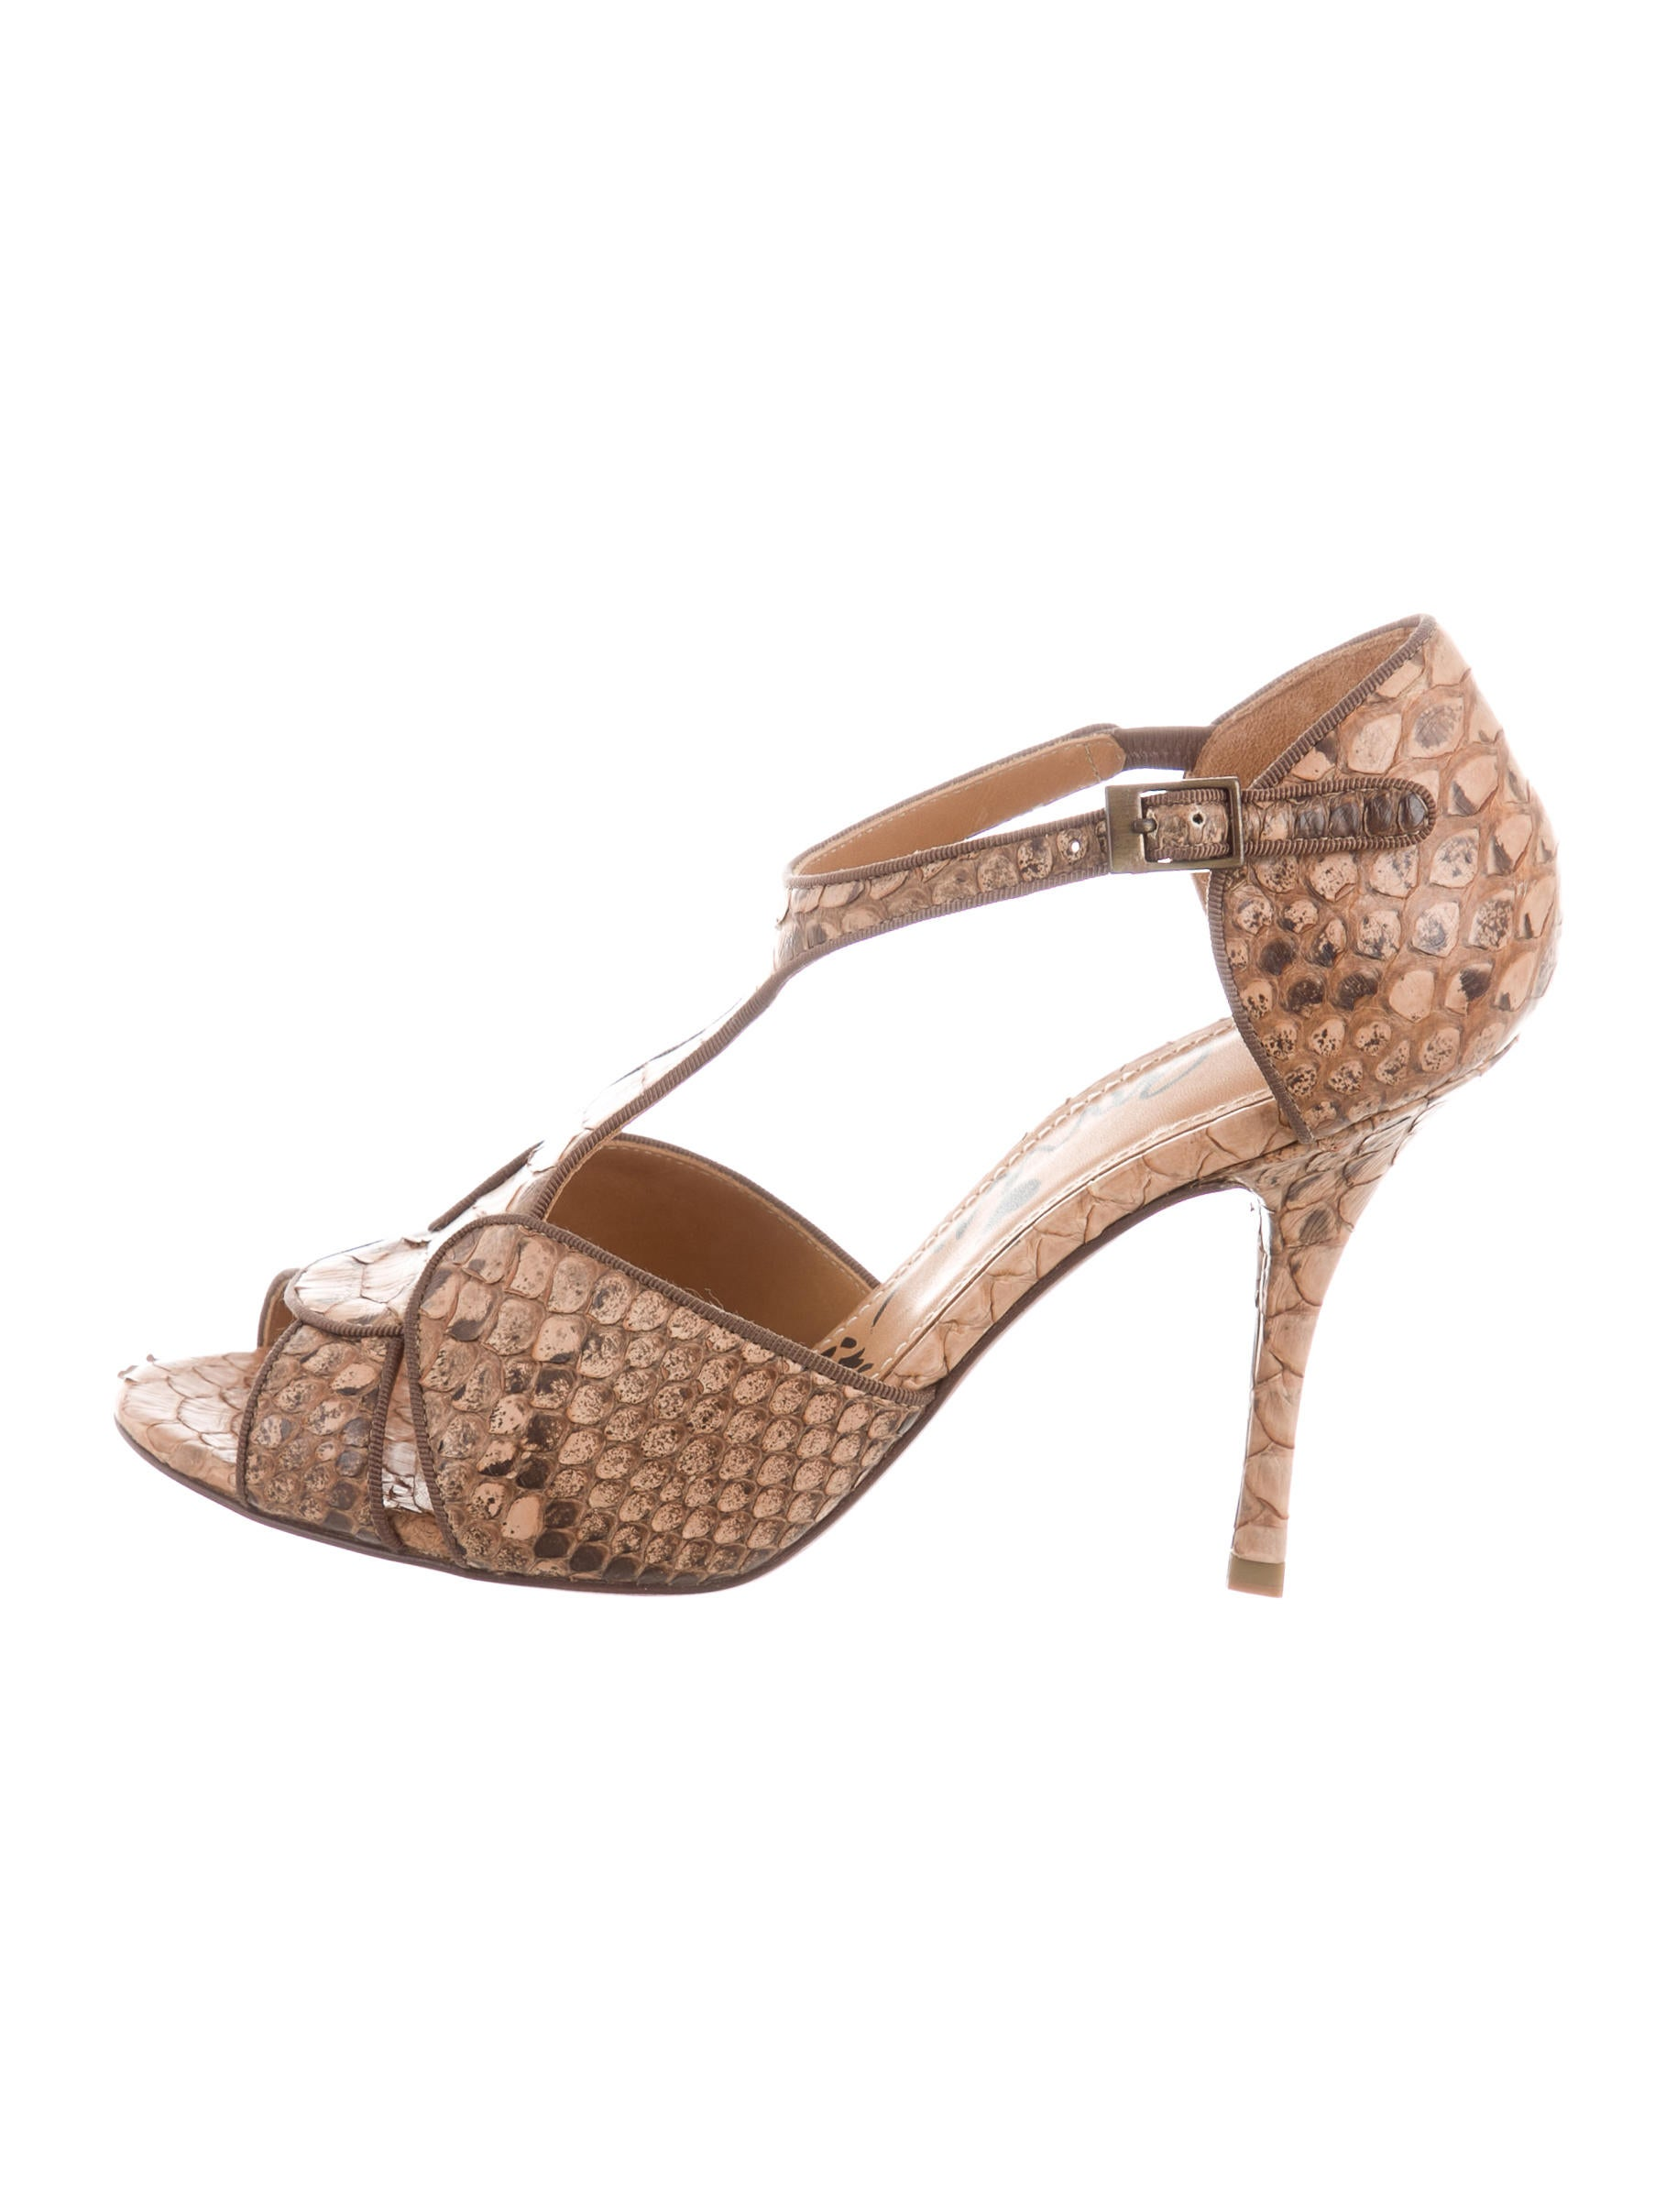 Lanvin Python T-Strap Pumps discount codes clearance store free shipping footlocker browse sale online iy3uu